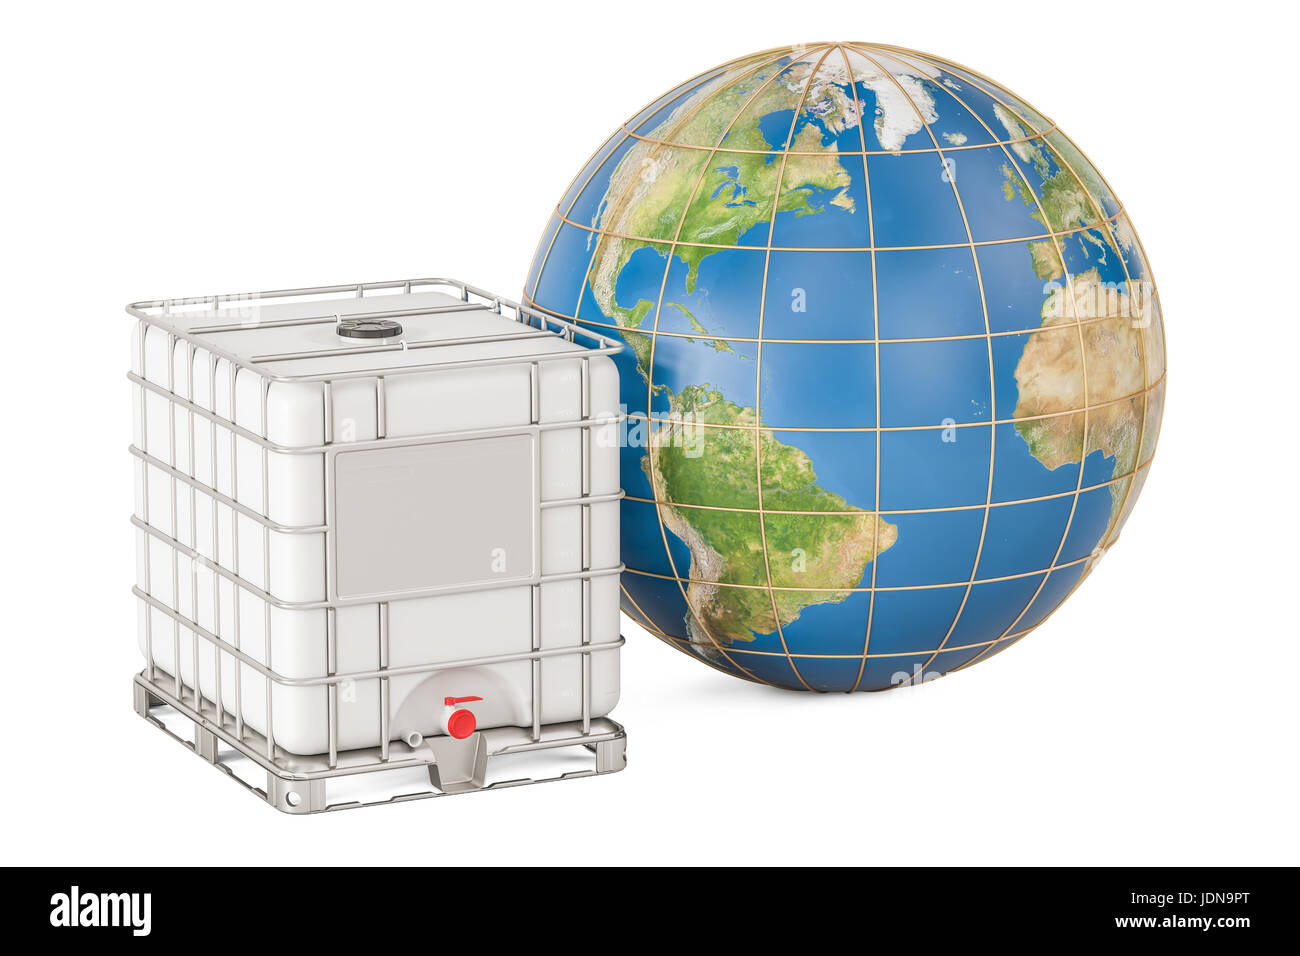 Intermediate bulk container with Earth globe. Transport of liquids around the world, 3D rendering isolated on white - Stock Image